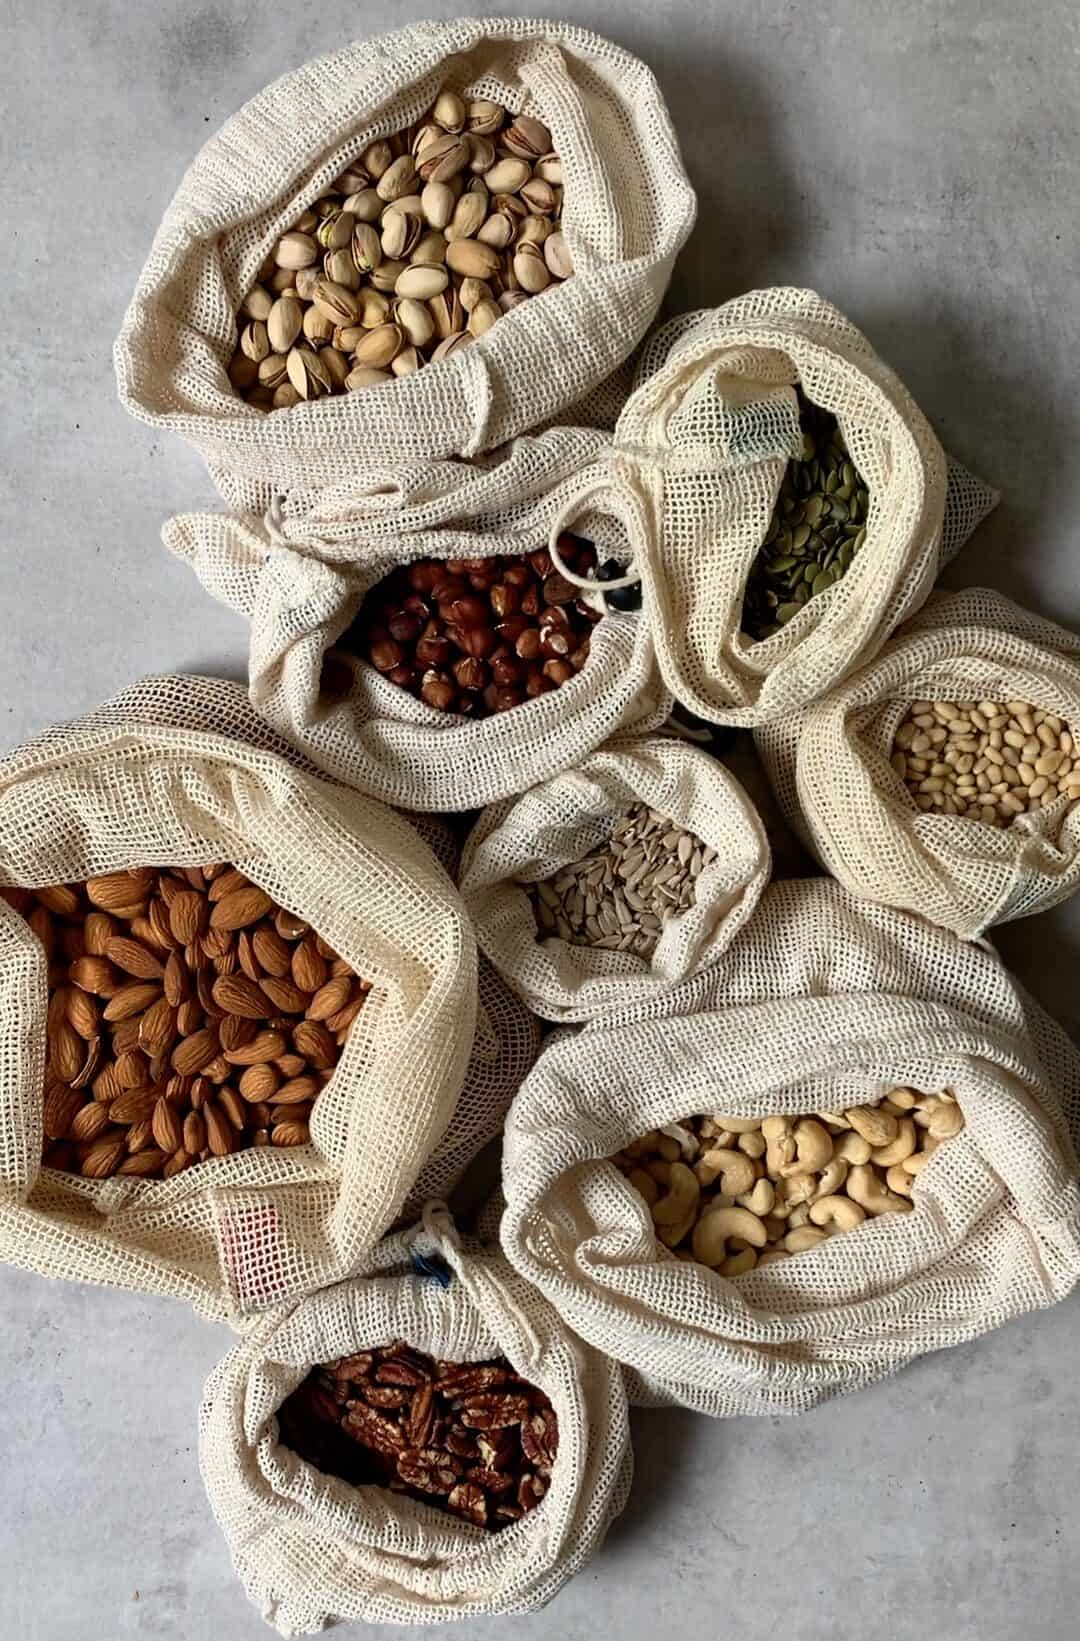 Nuts and seeds in recyclable bags